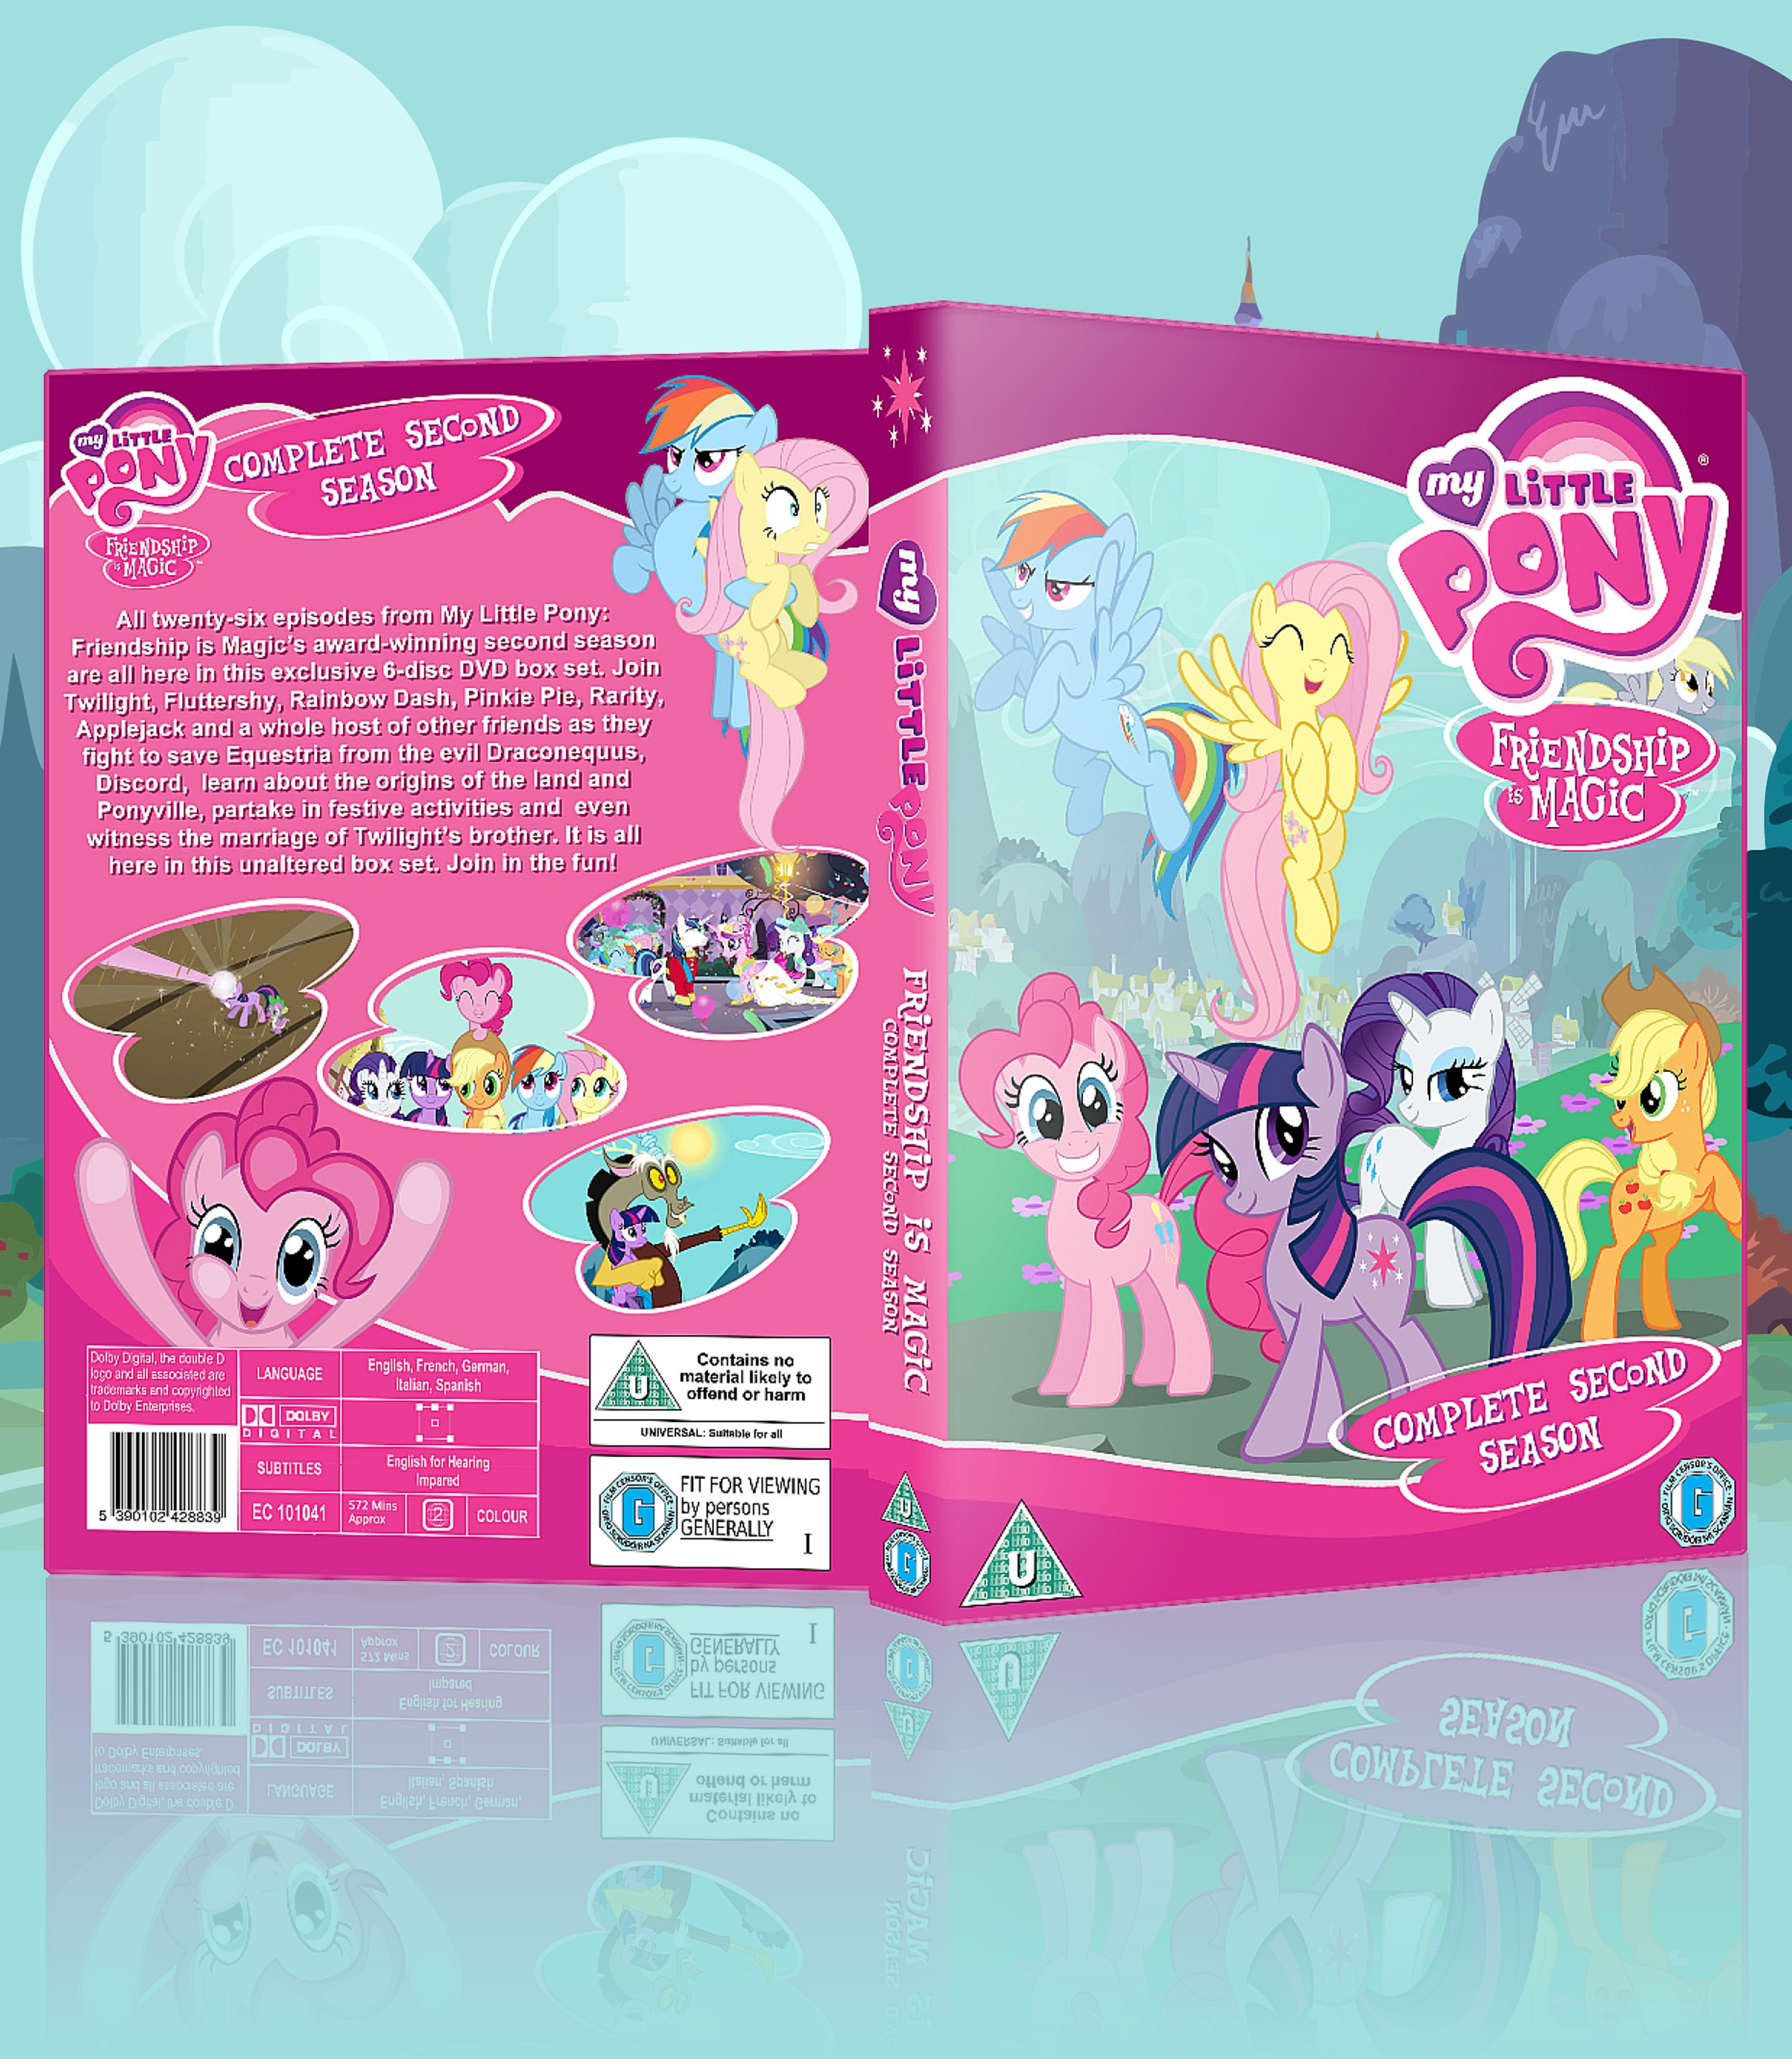 My Little Pony: Friendship is Magic: Season 2 box cover